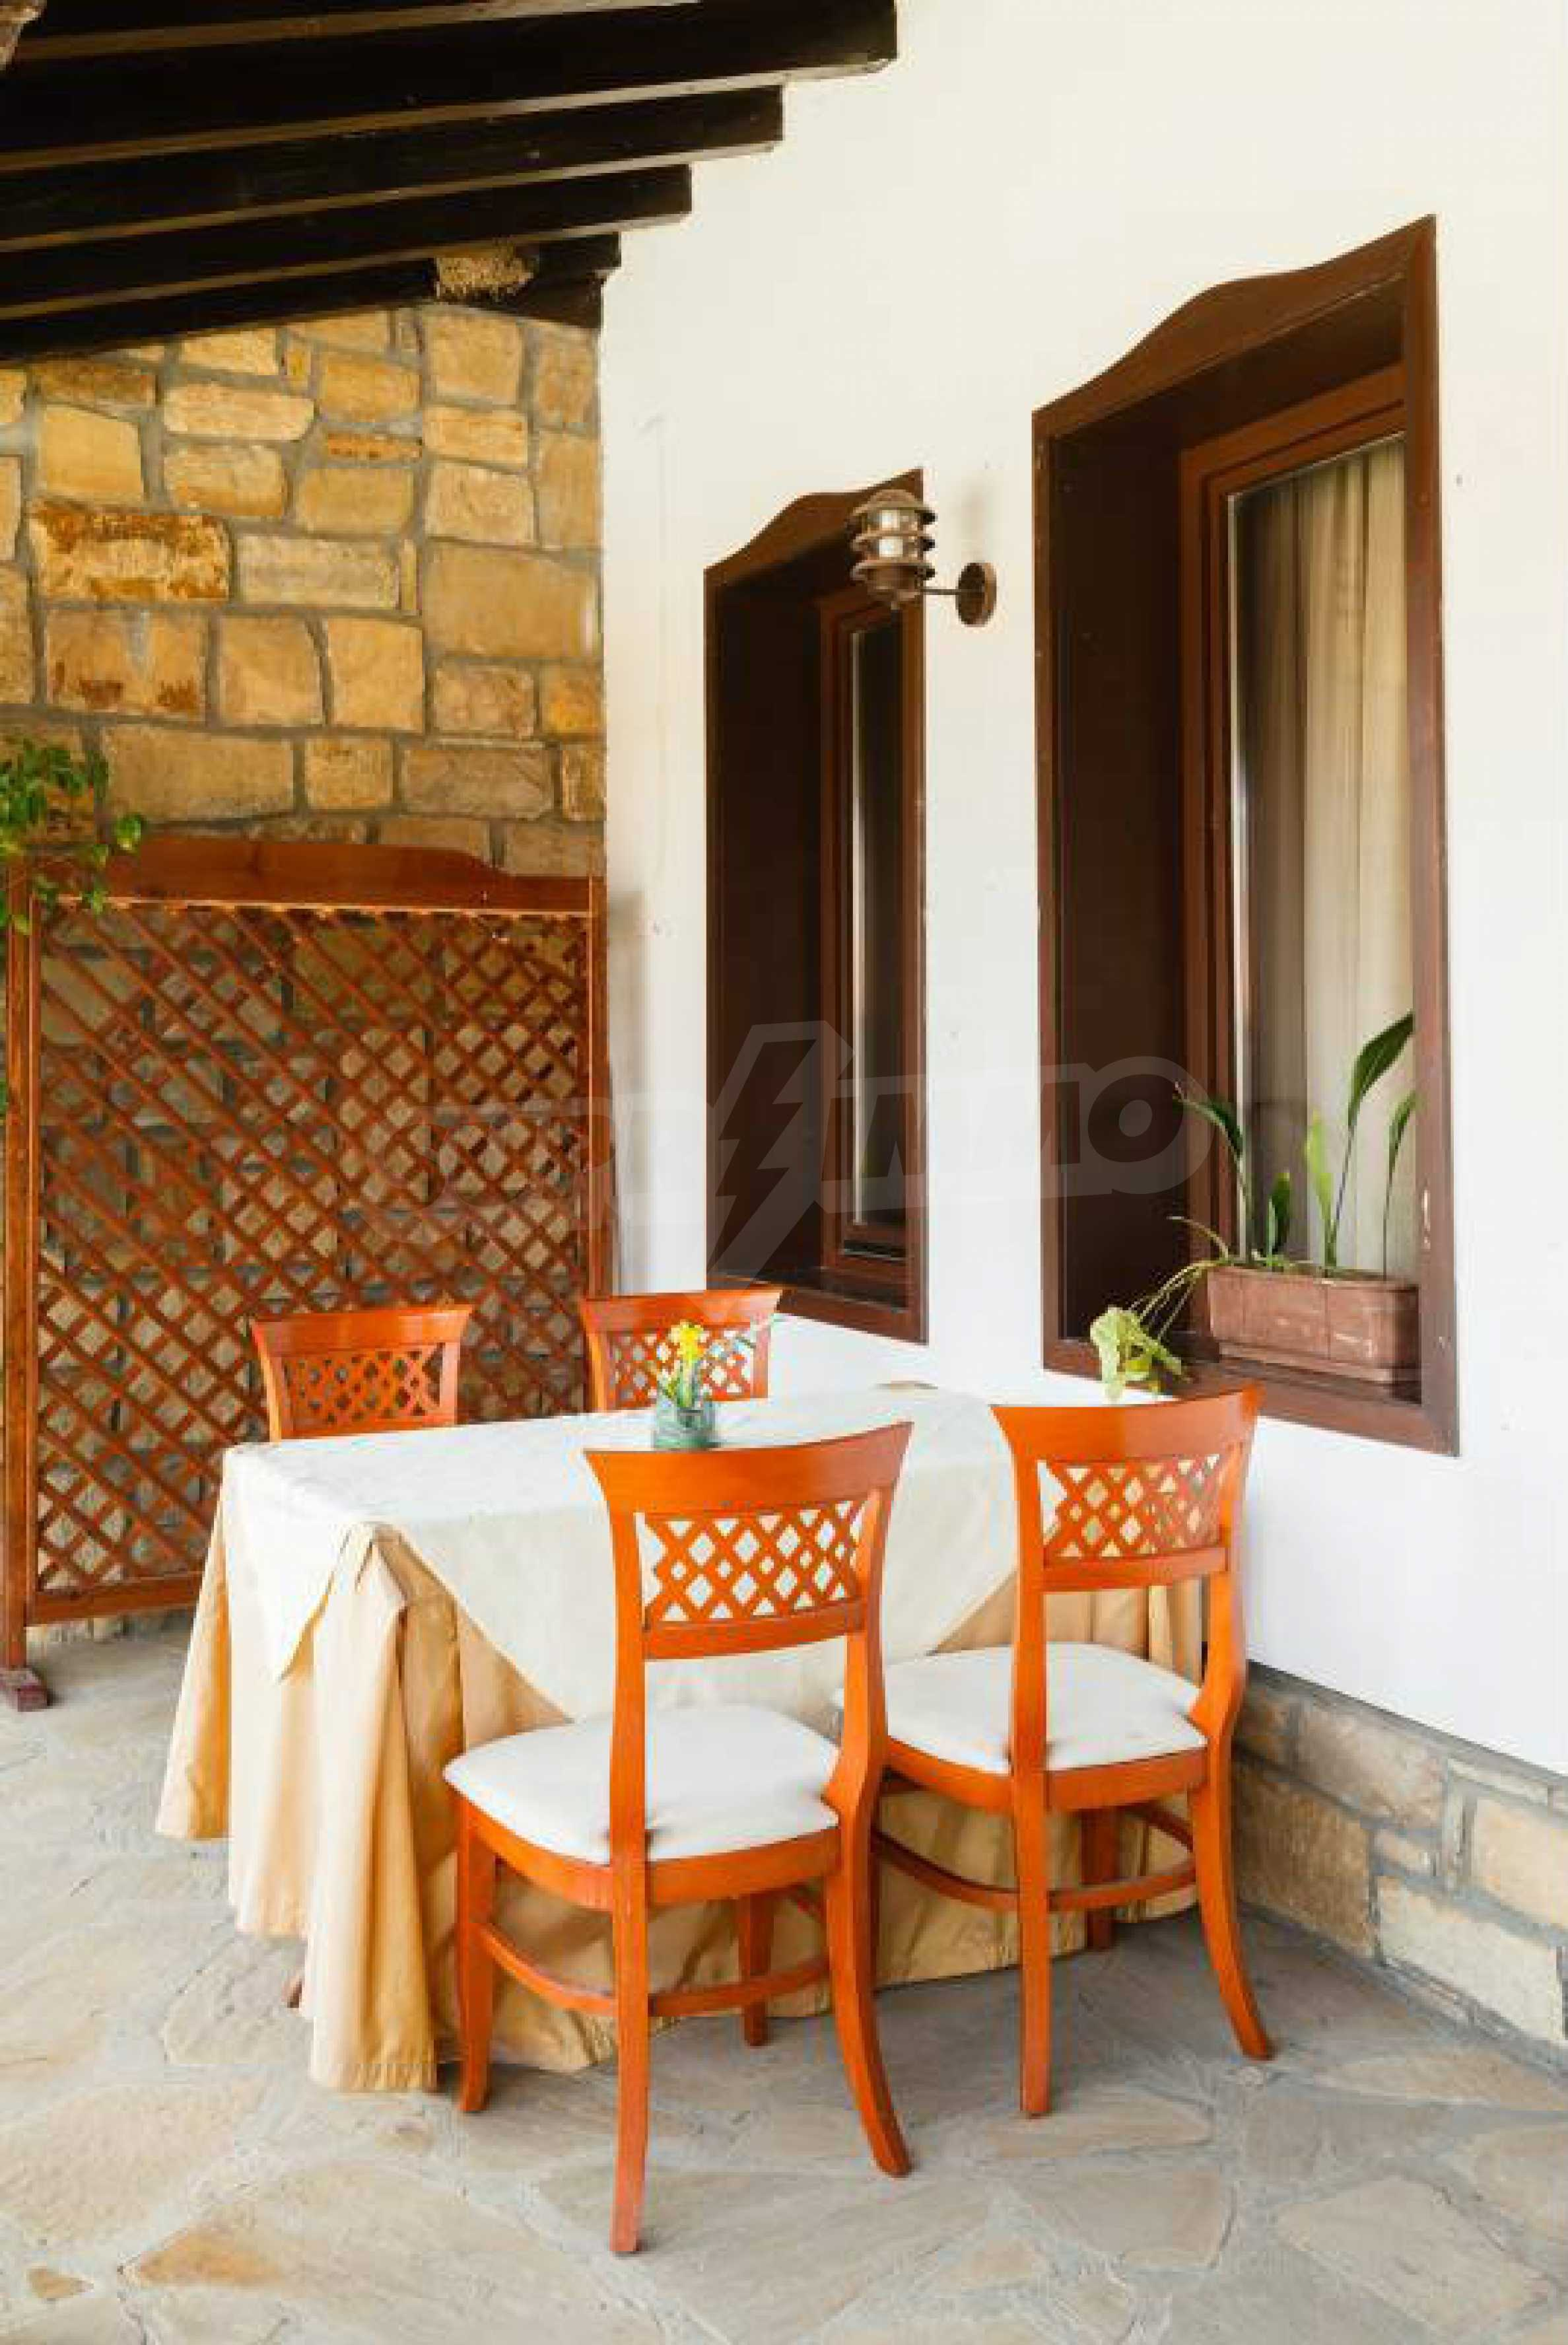 Fully equipped hotel, a restaurant, a house and a yard in the center of popular Arbanassi village 13